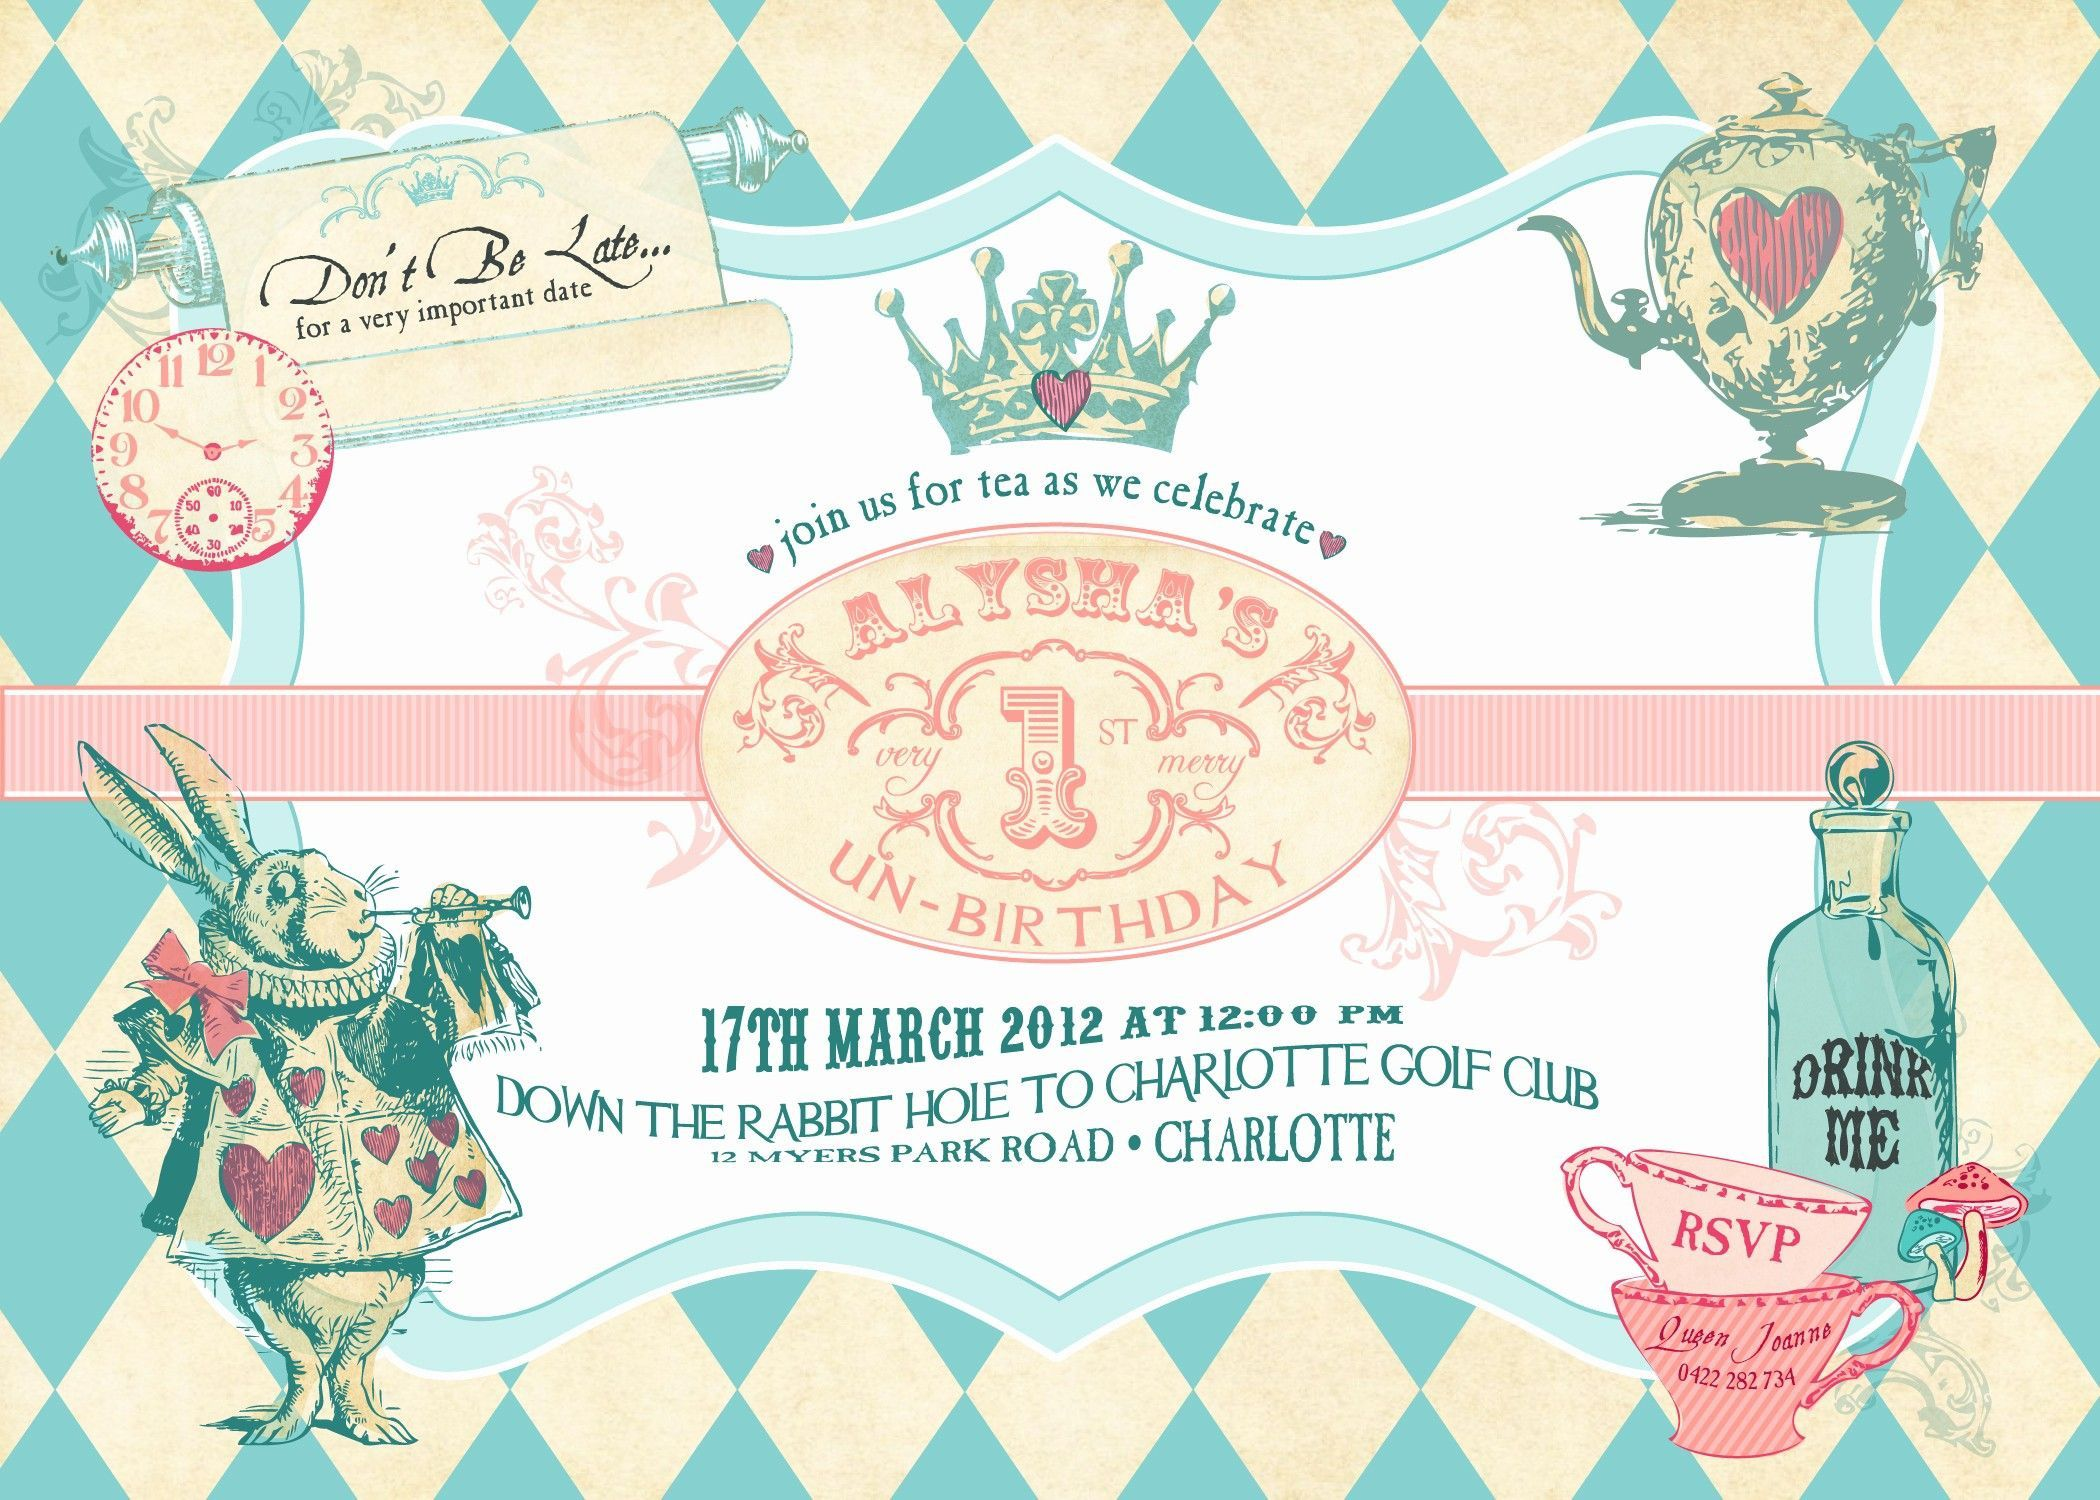 003 Staggering Alice In Wonderland Party Template High Resolution  Templates Invitation FreeFull